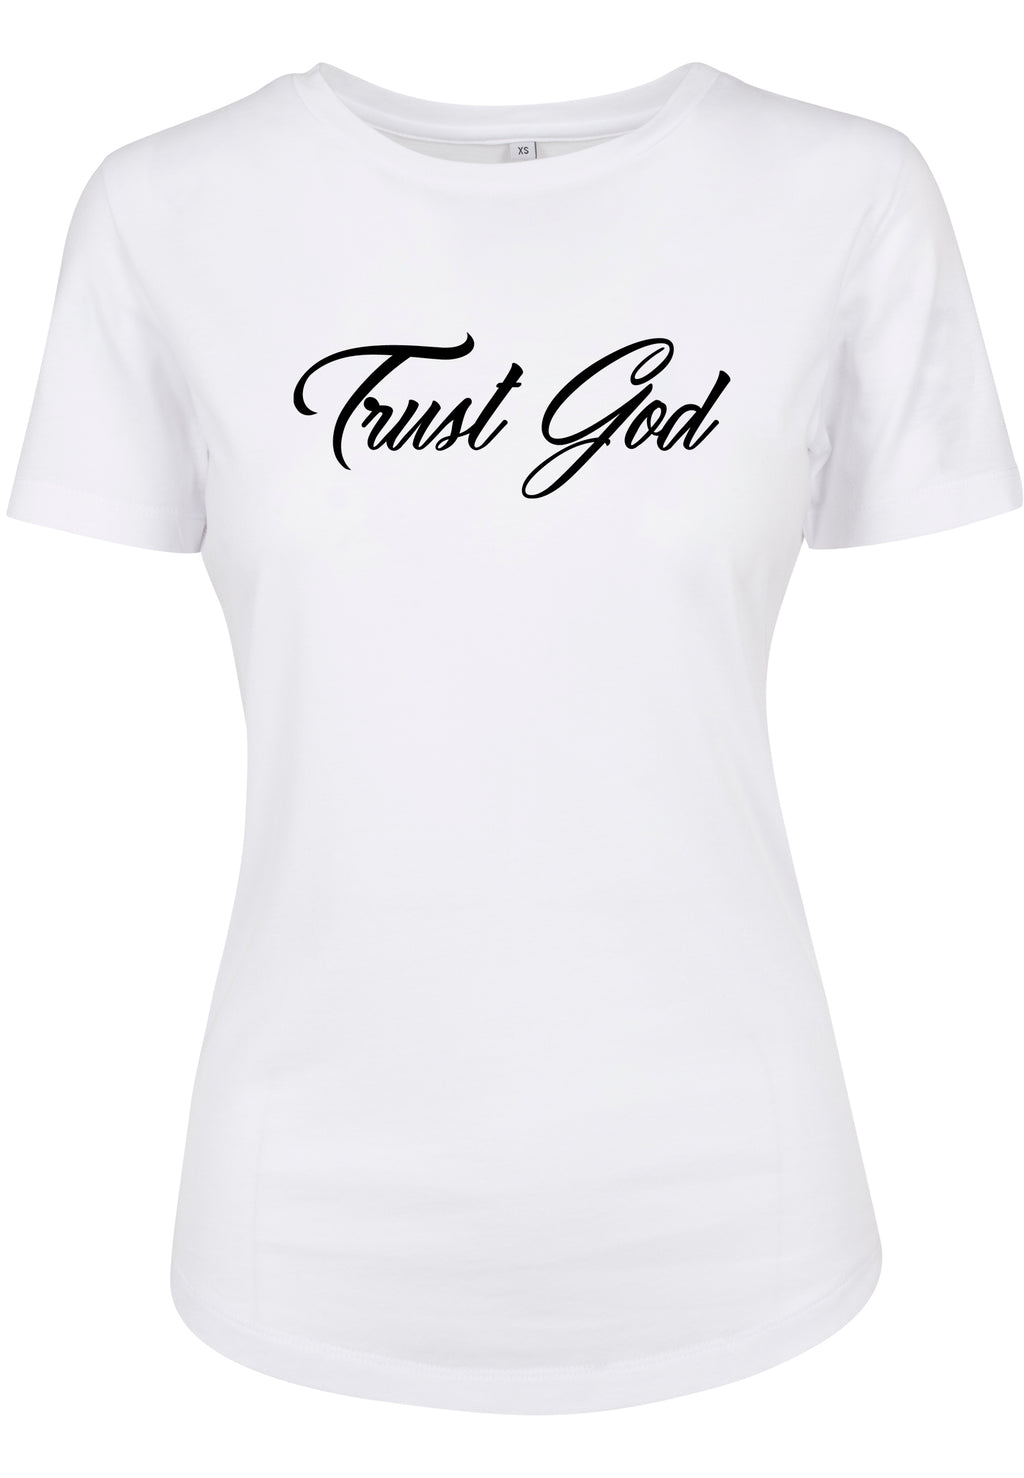 Womens TRUST GOD Bold Cursive Fitted Tee (White)